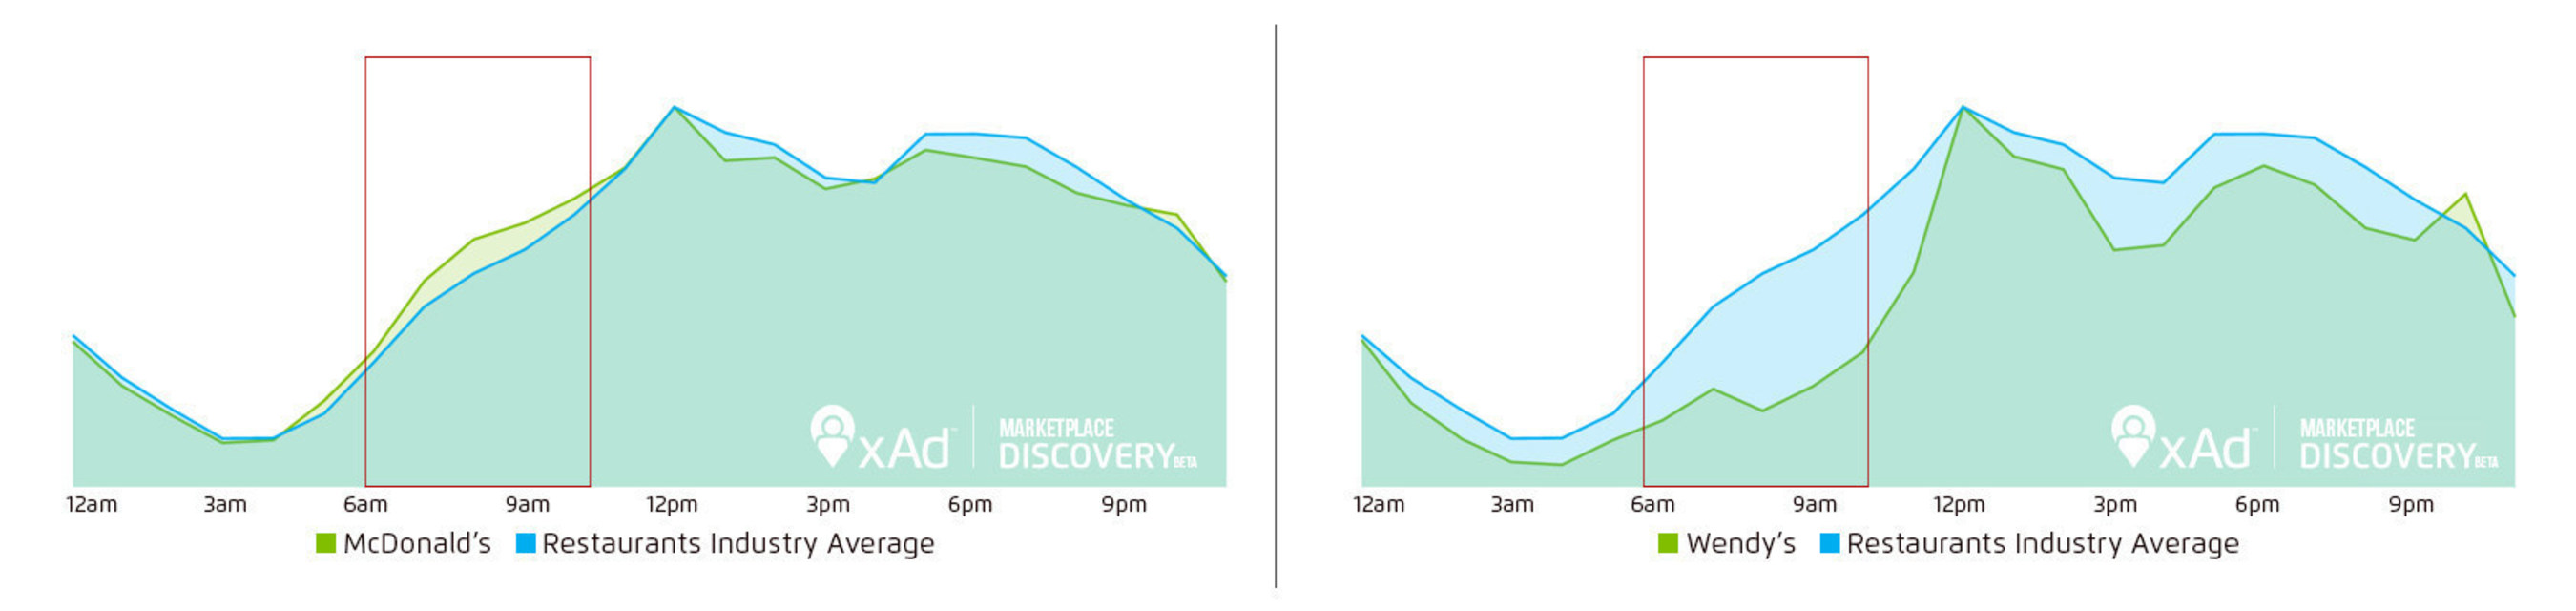 McDonald's vs. Wendy's Foot Traffic by Time-of-Day, Average for June -- Source: xAd MarketPlace Discovery